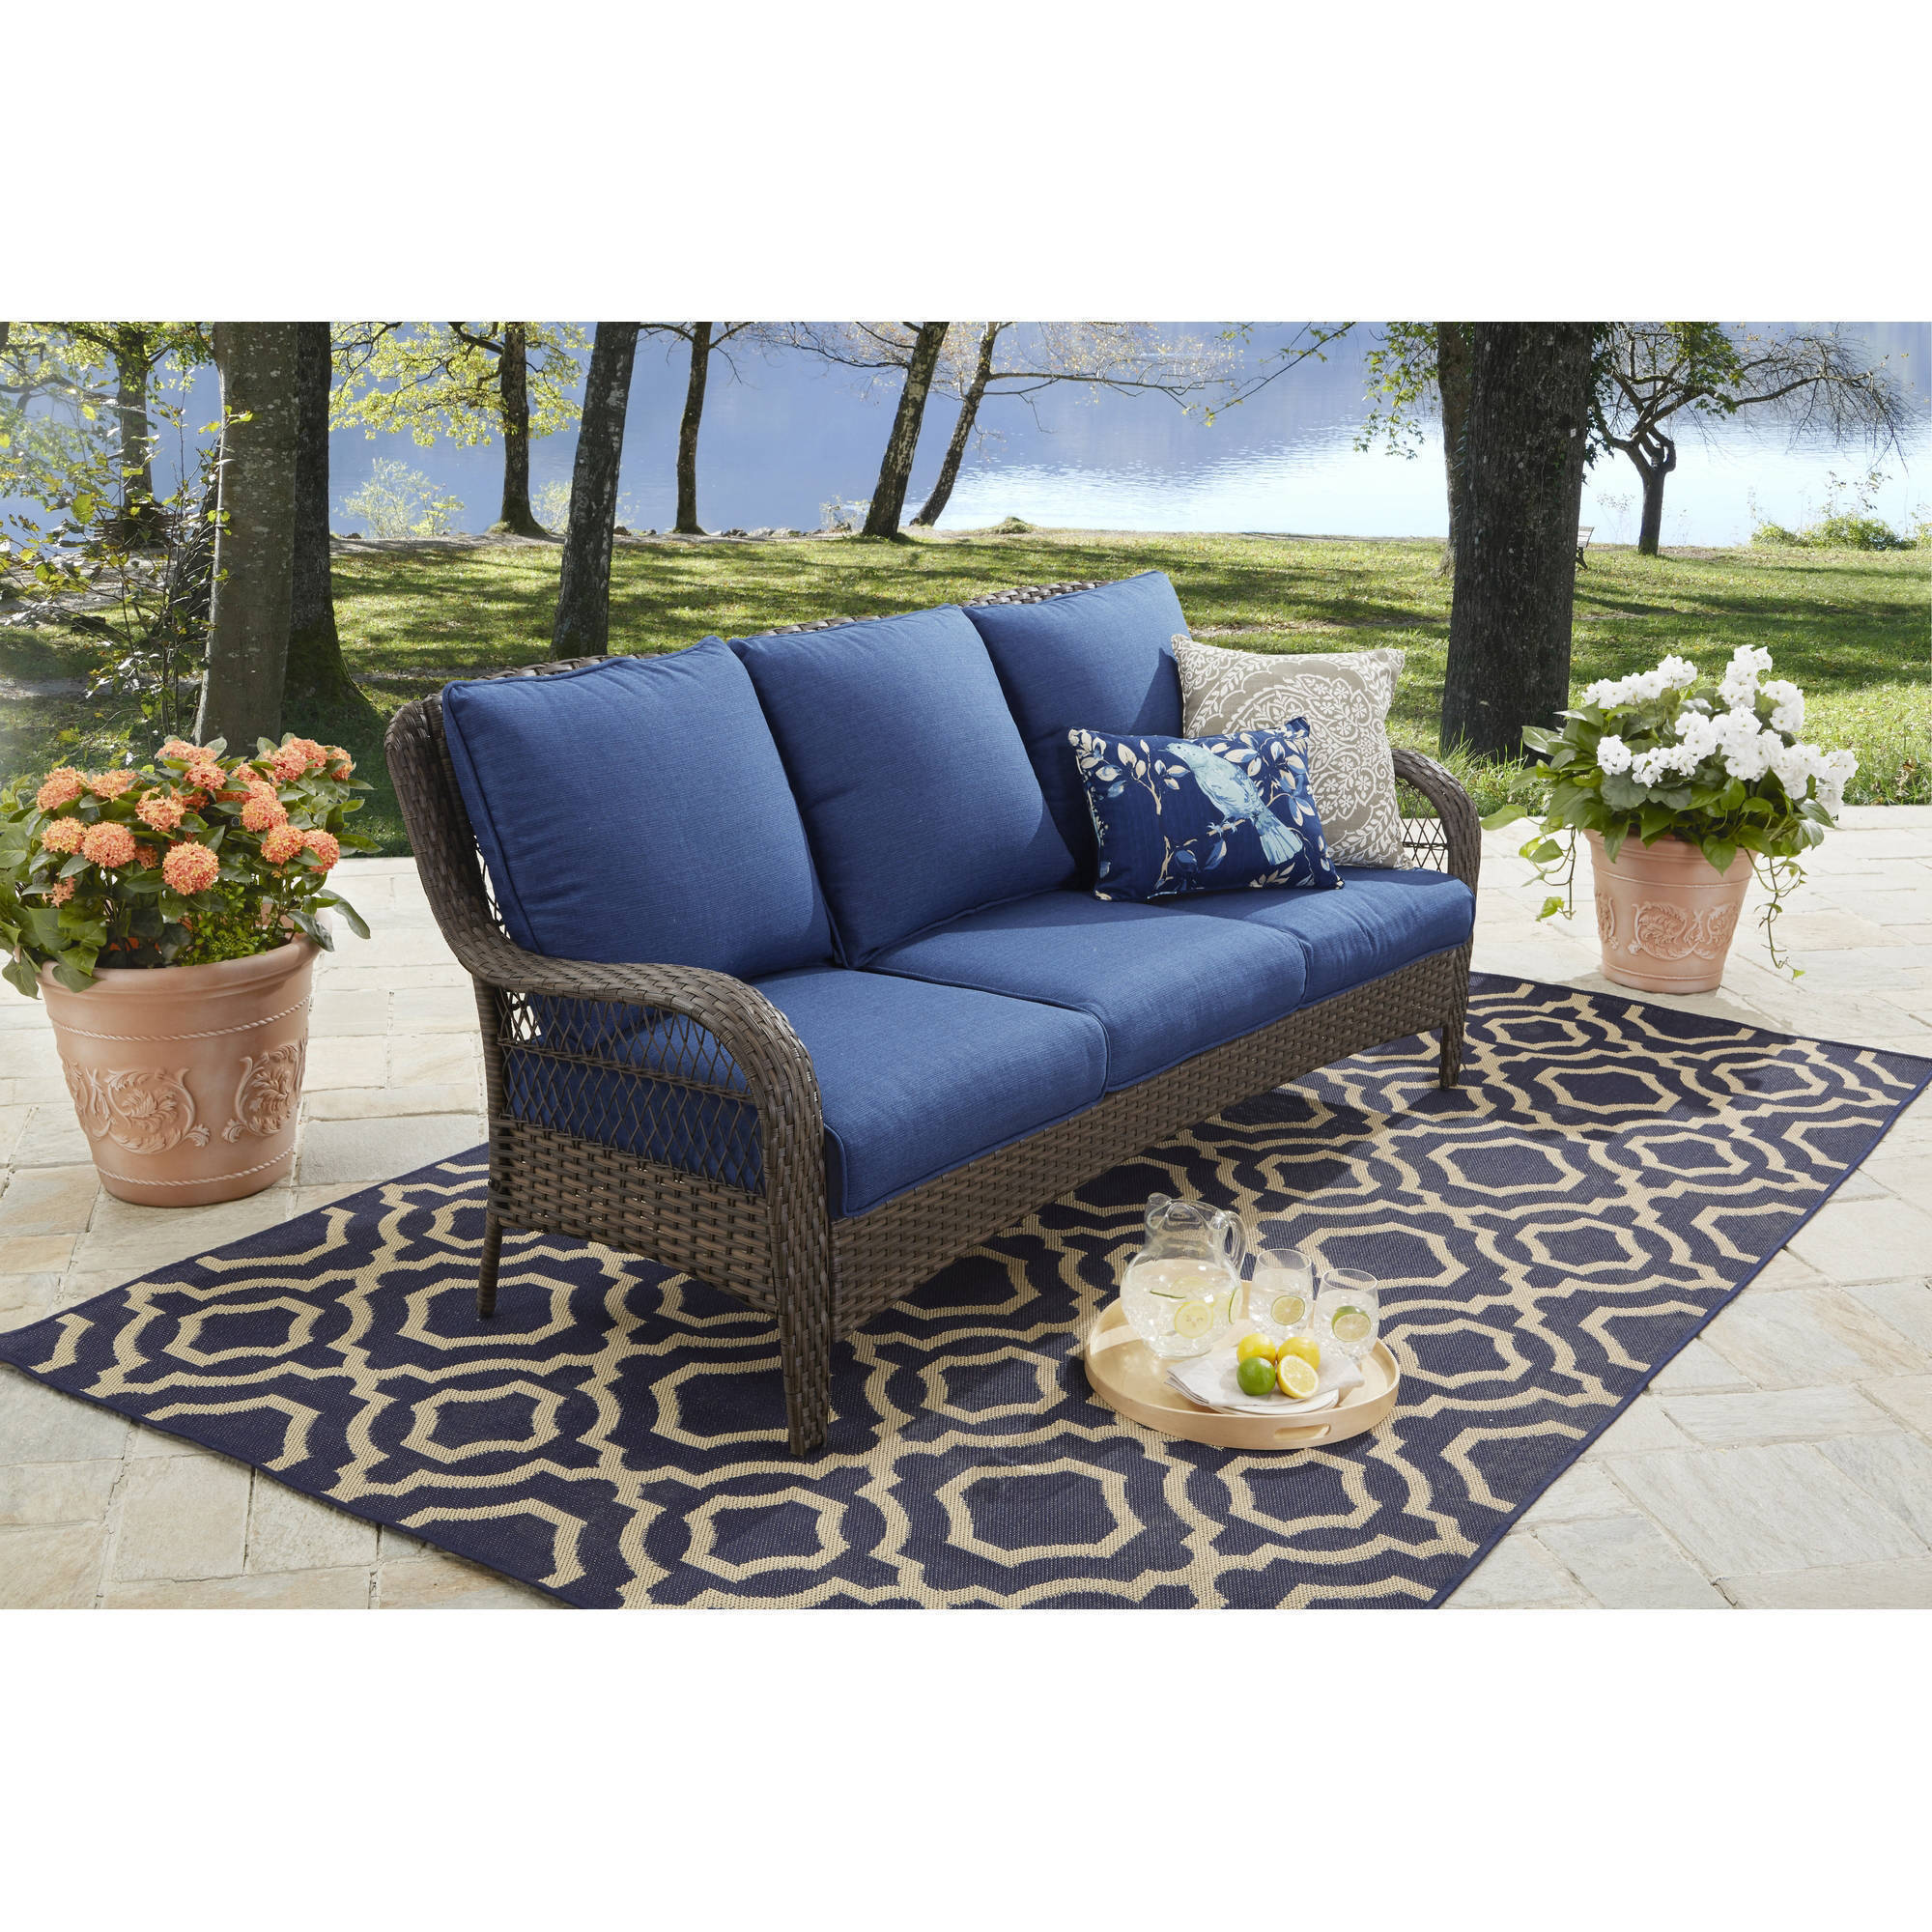 Better Homes and Gardens Colebrook Outdoor Sofa